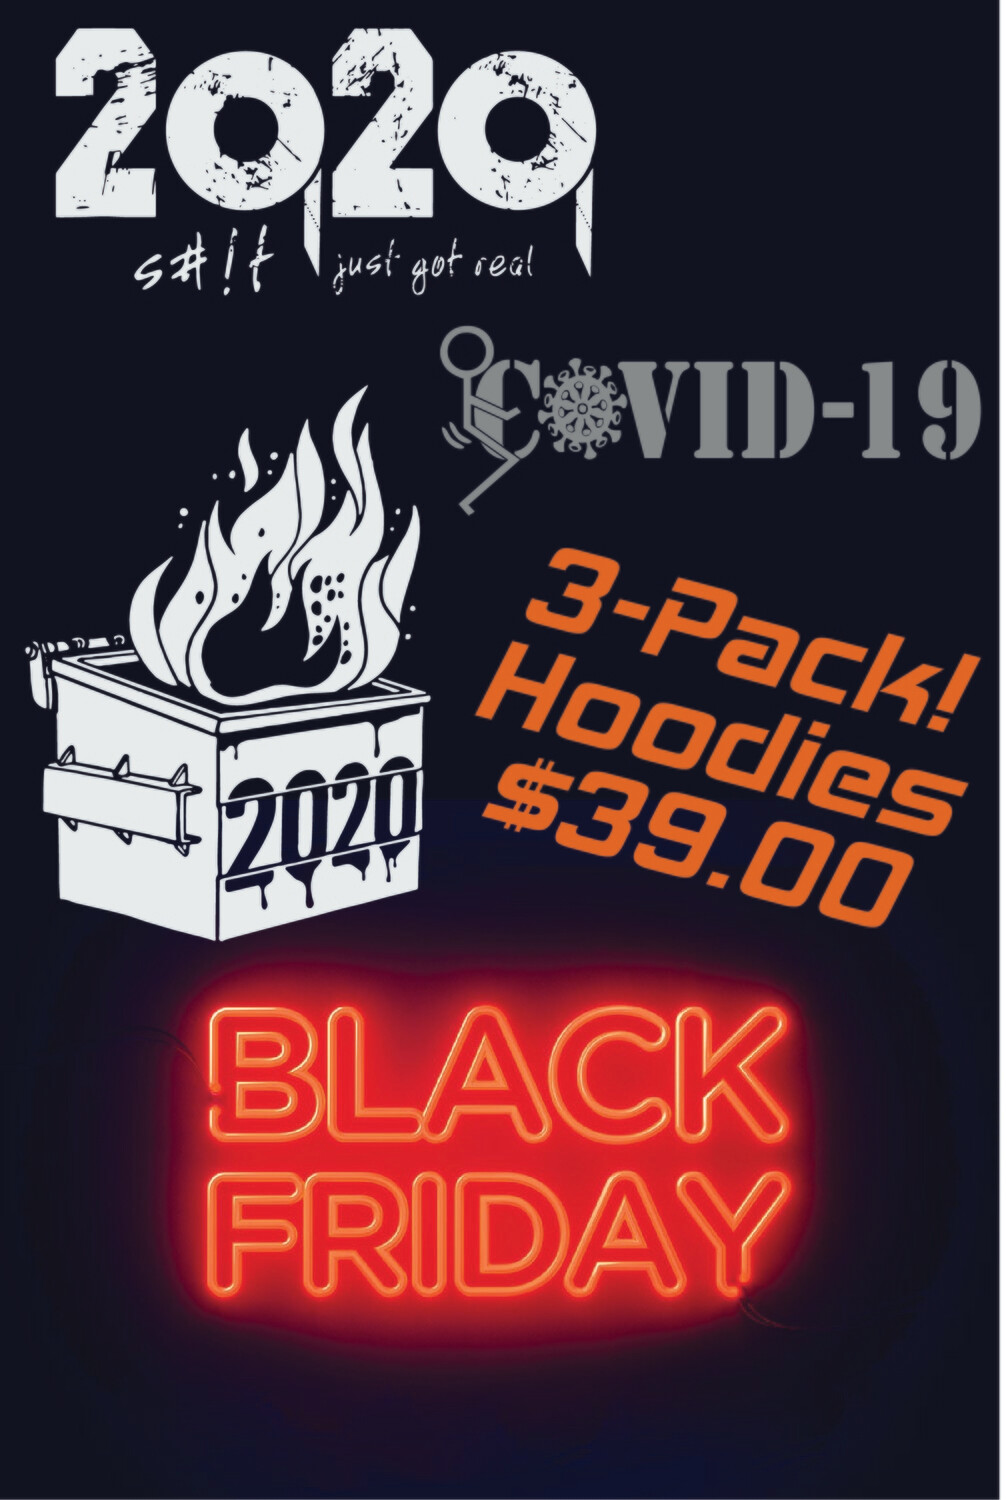 BLACK FRIDAY DEAL! 2020 Dumpster Fire - F#%K Covid-19 - S#!t Just Got Real Hoodie 3-PACK!